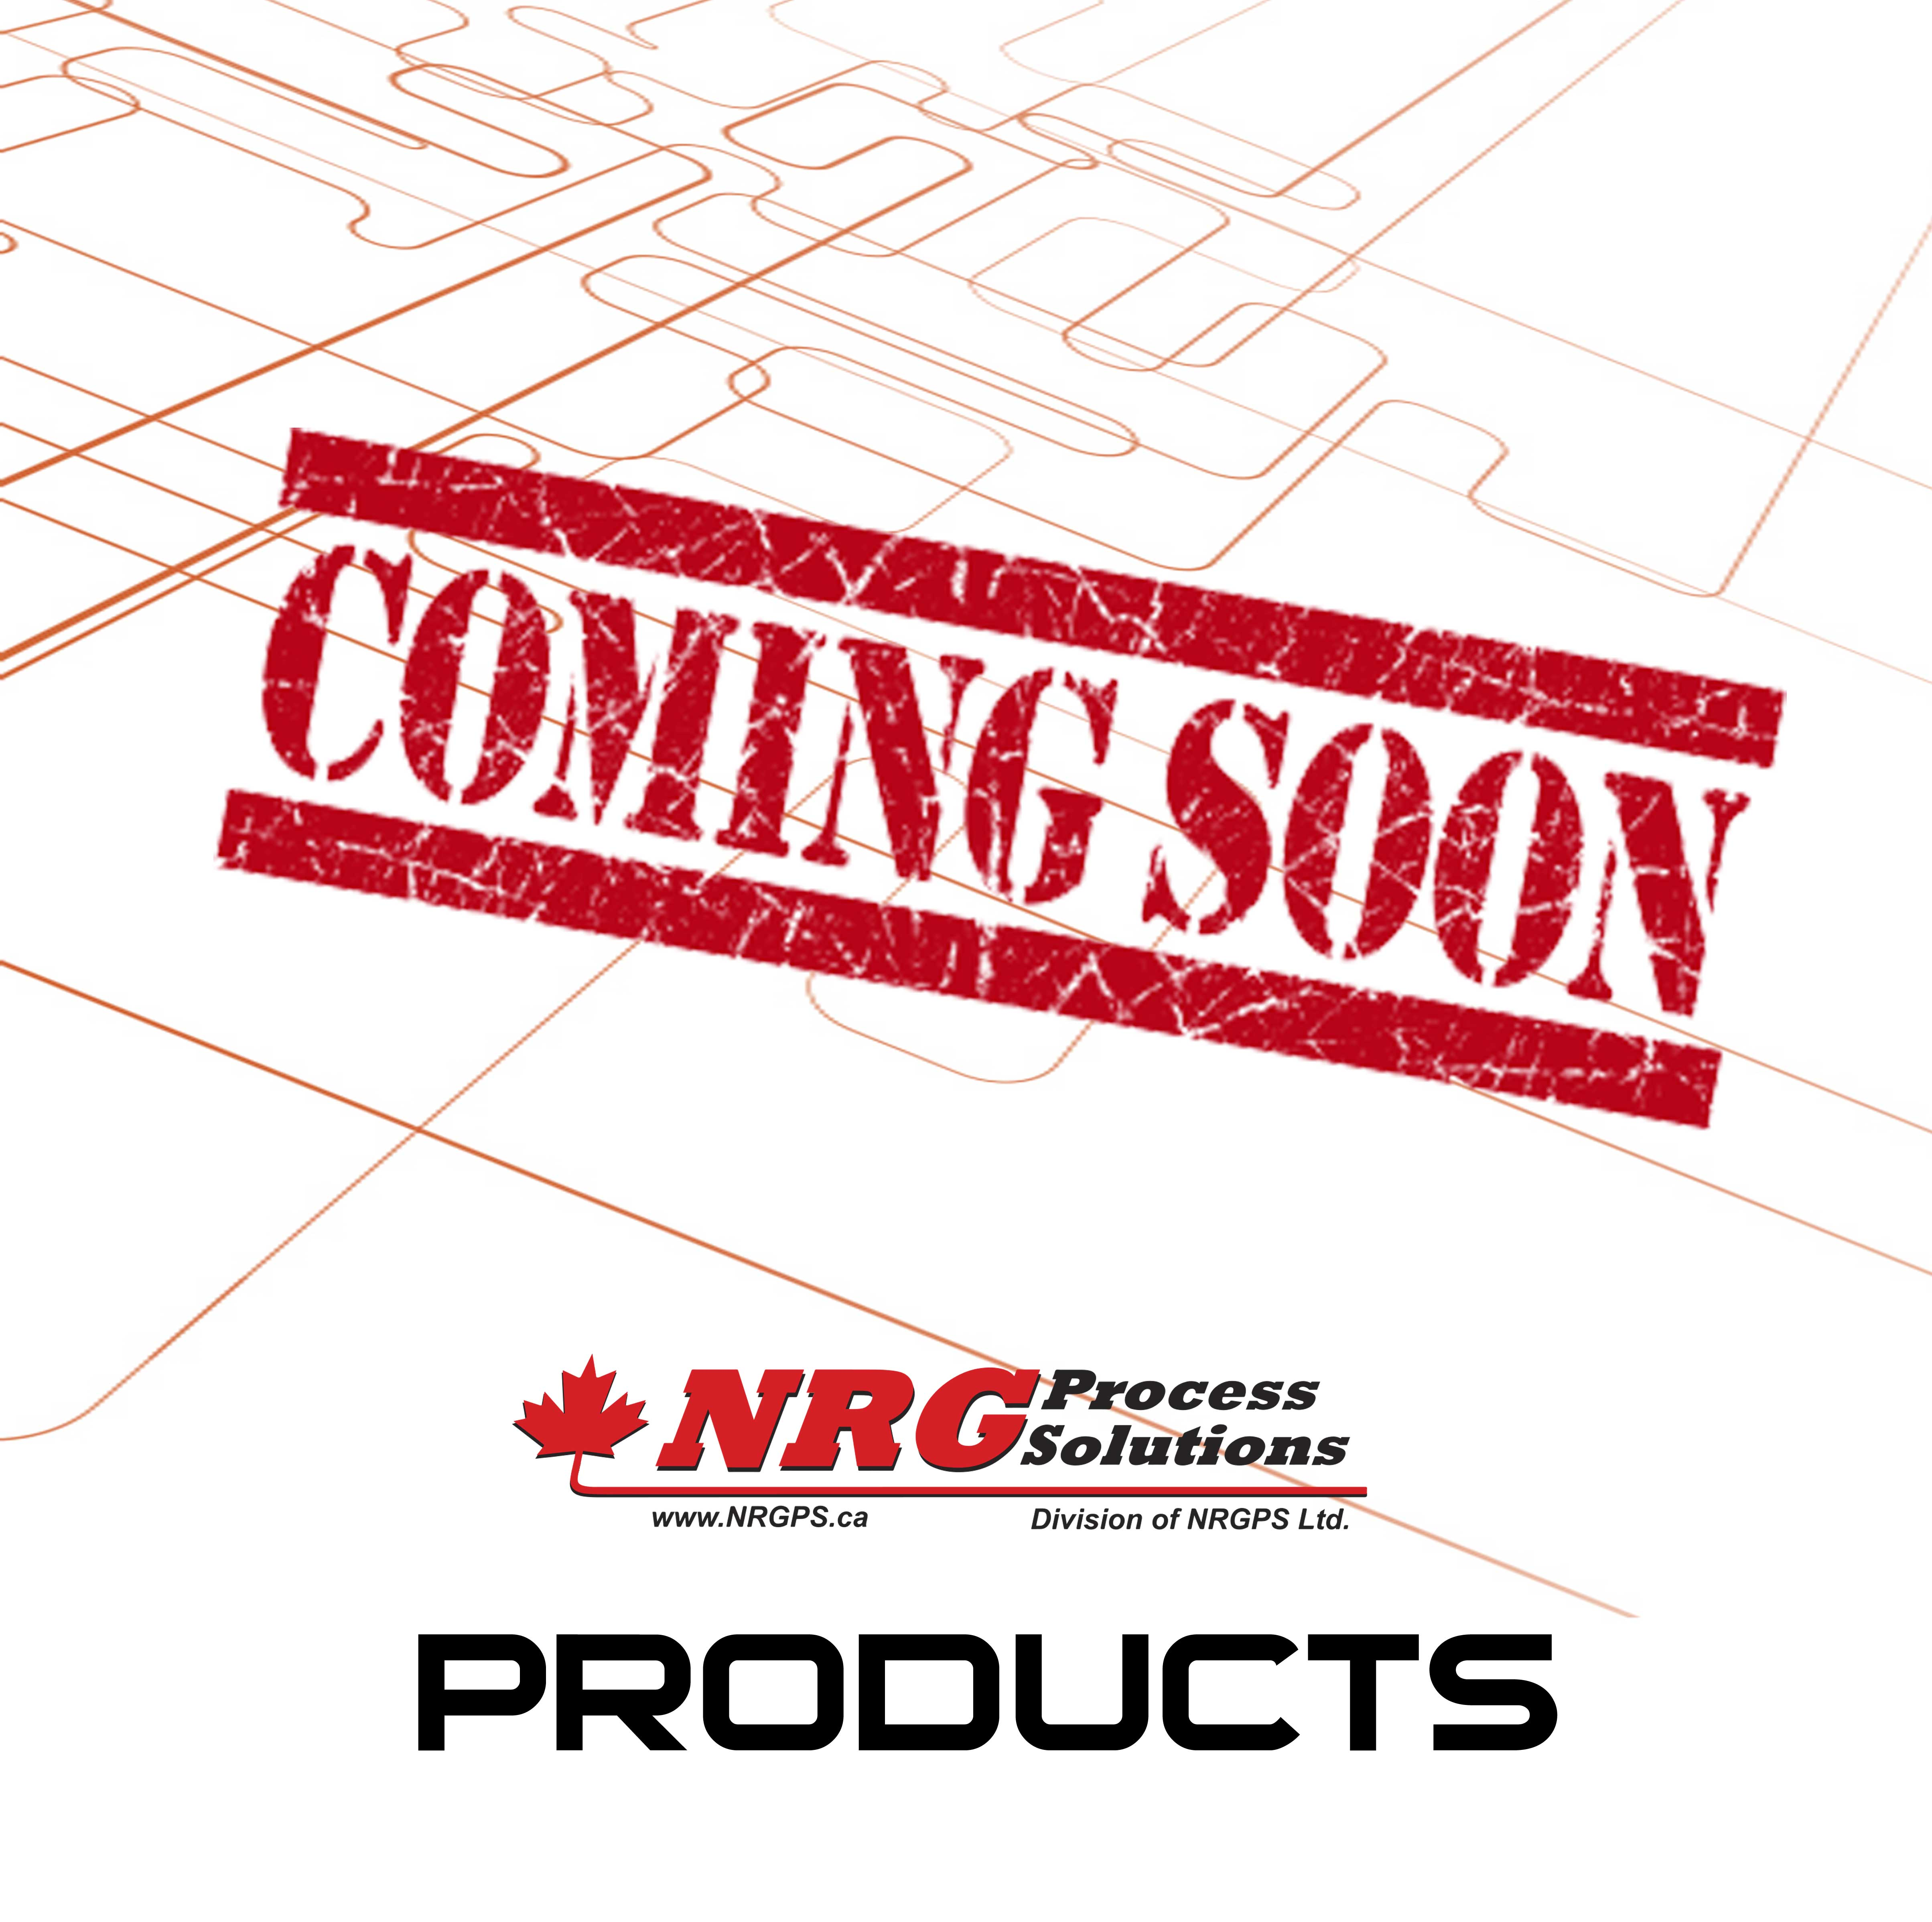 Product Offerings - Coming Soon!